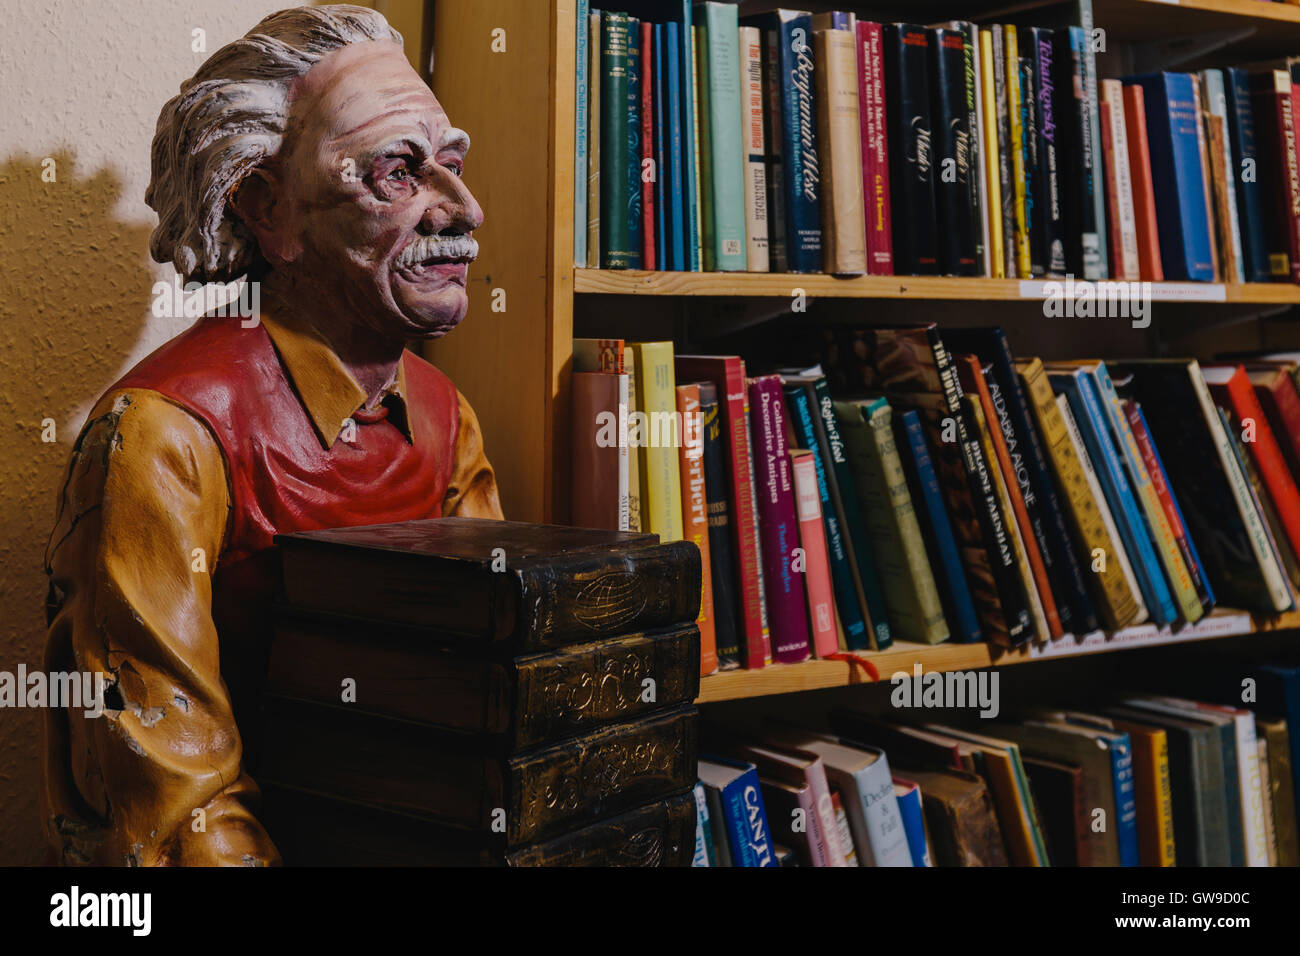 Carved figure of bookseller - Stock Image